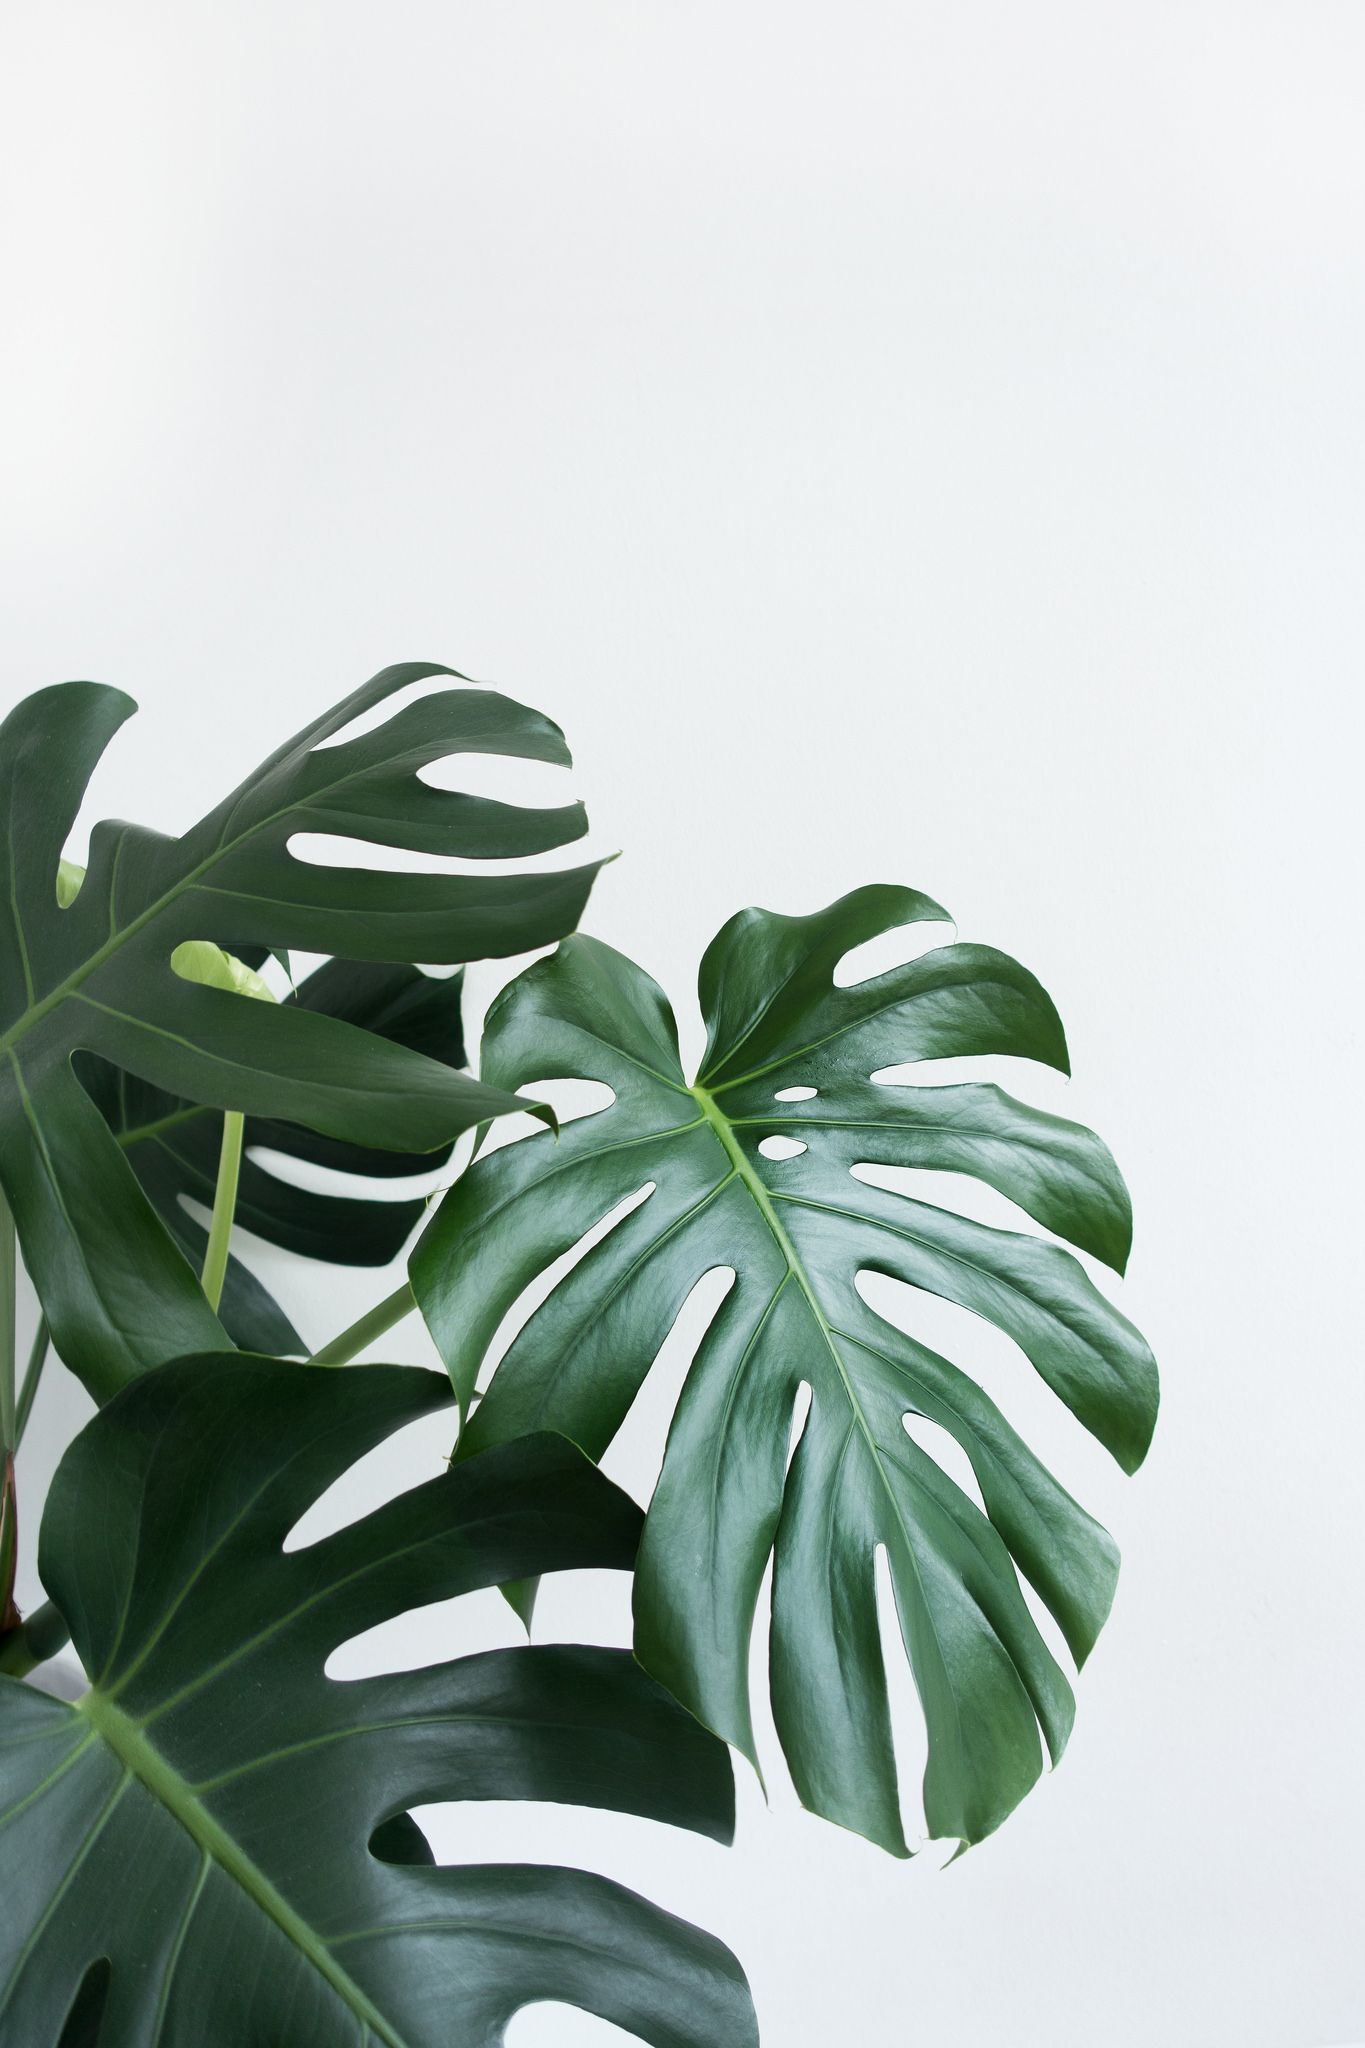 The Health Benefits Of Houseplants in 2019   Wallpaper   Plant wallpaper, Wallpaper, Plants